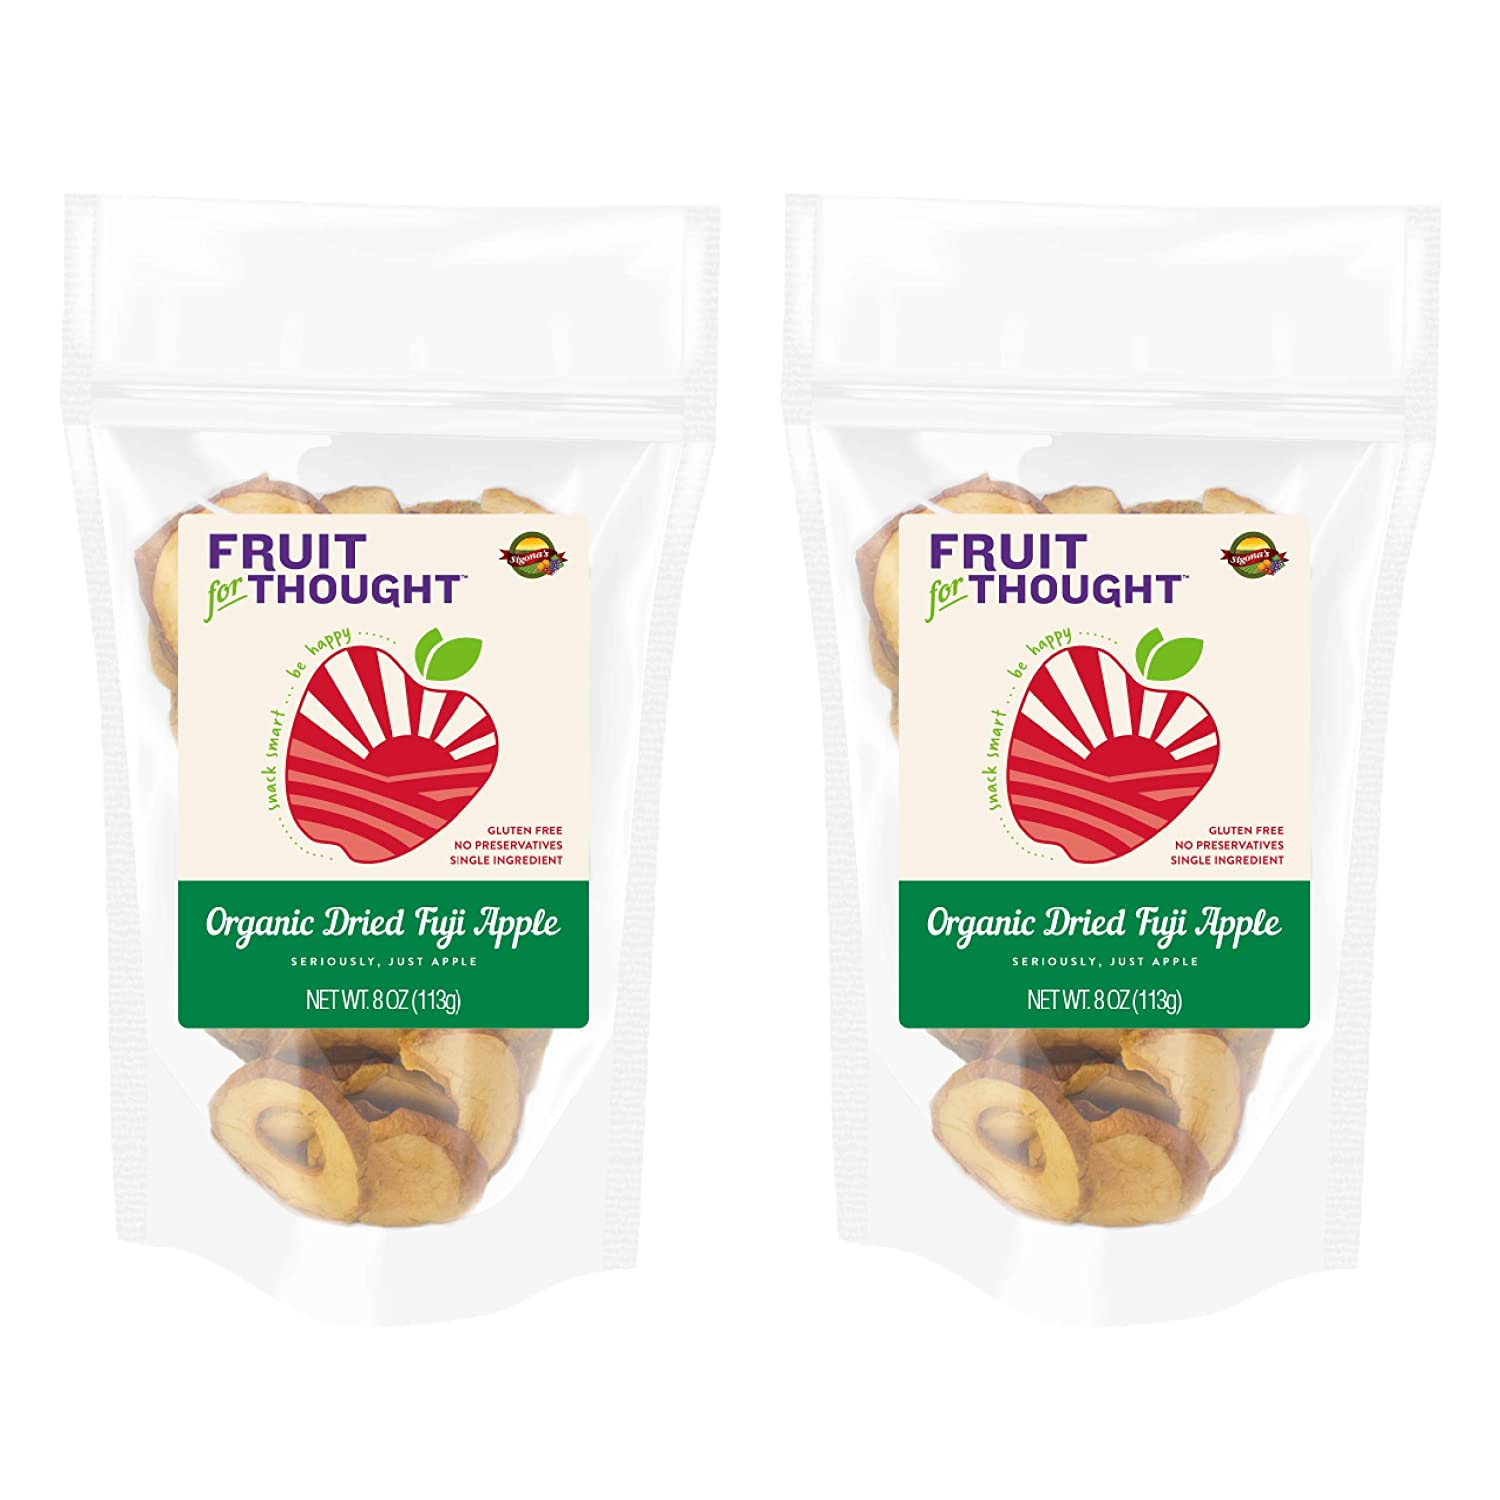 USA Grown Organic Dried Fuji Apple Slices 8 Ounce Bag (Pack of 2) - Seriously Just Fuji Apples, No Added Sugar, No Preservatives - Organic Dried Apples Multi-serving Bag Bundle